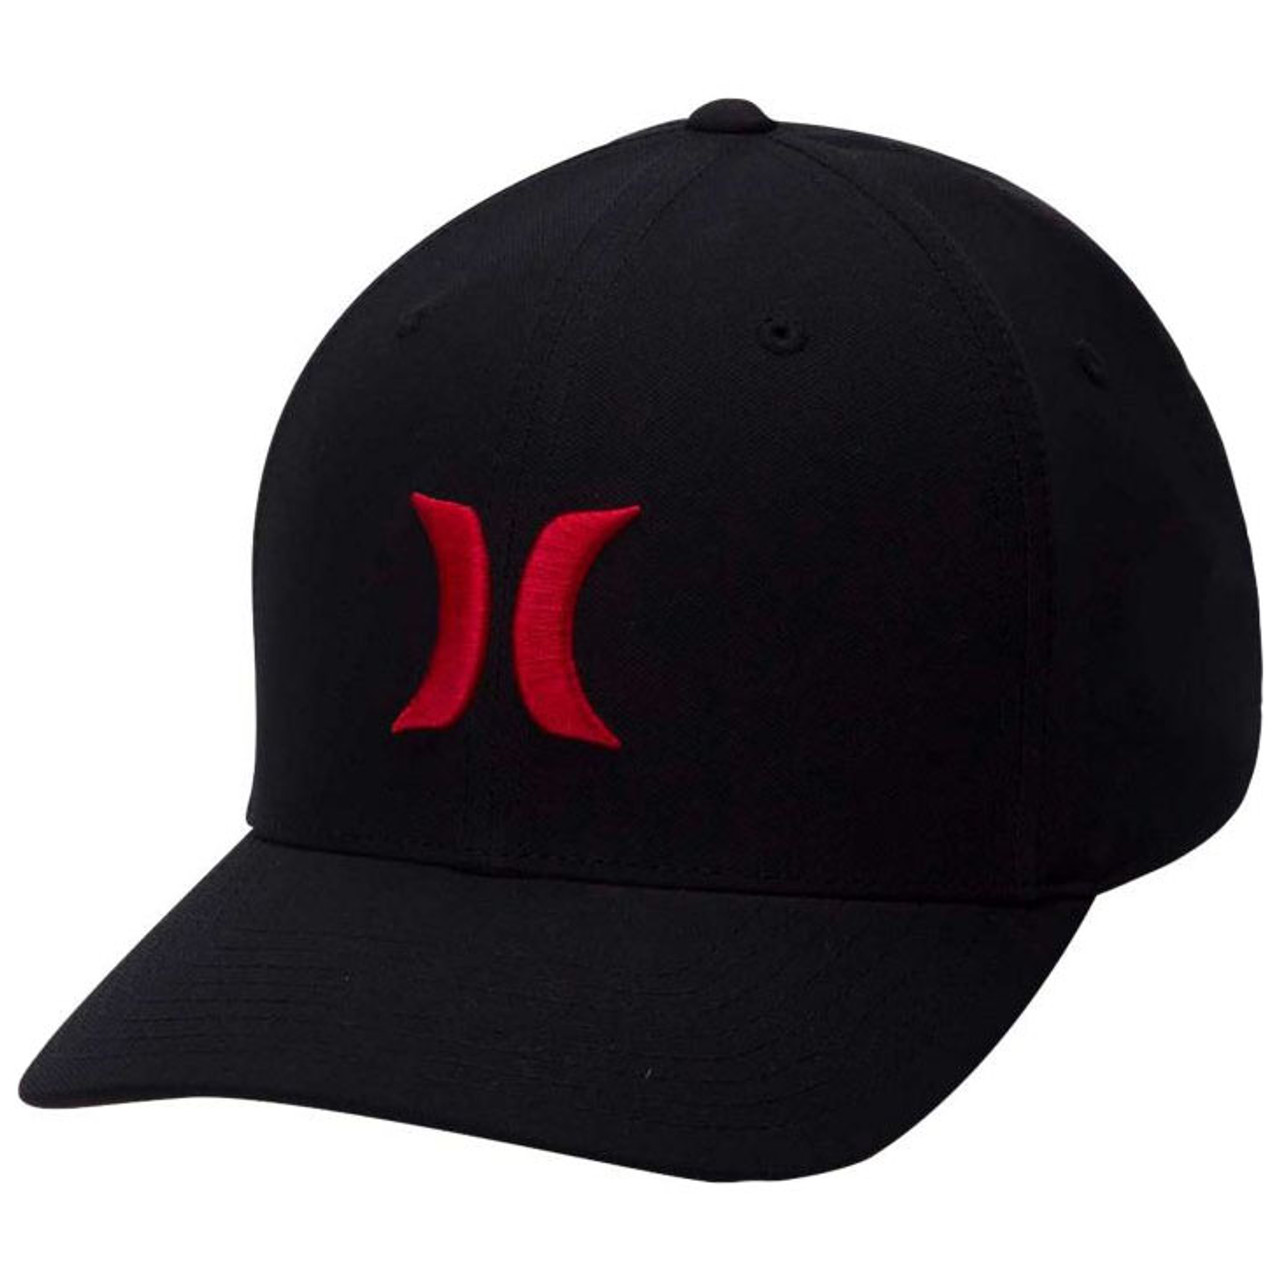 dcc7e7d2641 Hurley Hat - Dri-Fit One and Only - Black University Red - Surf and Dirt